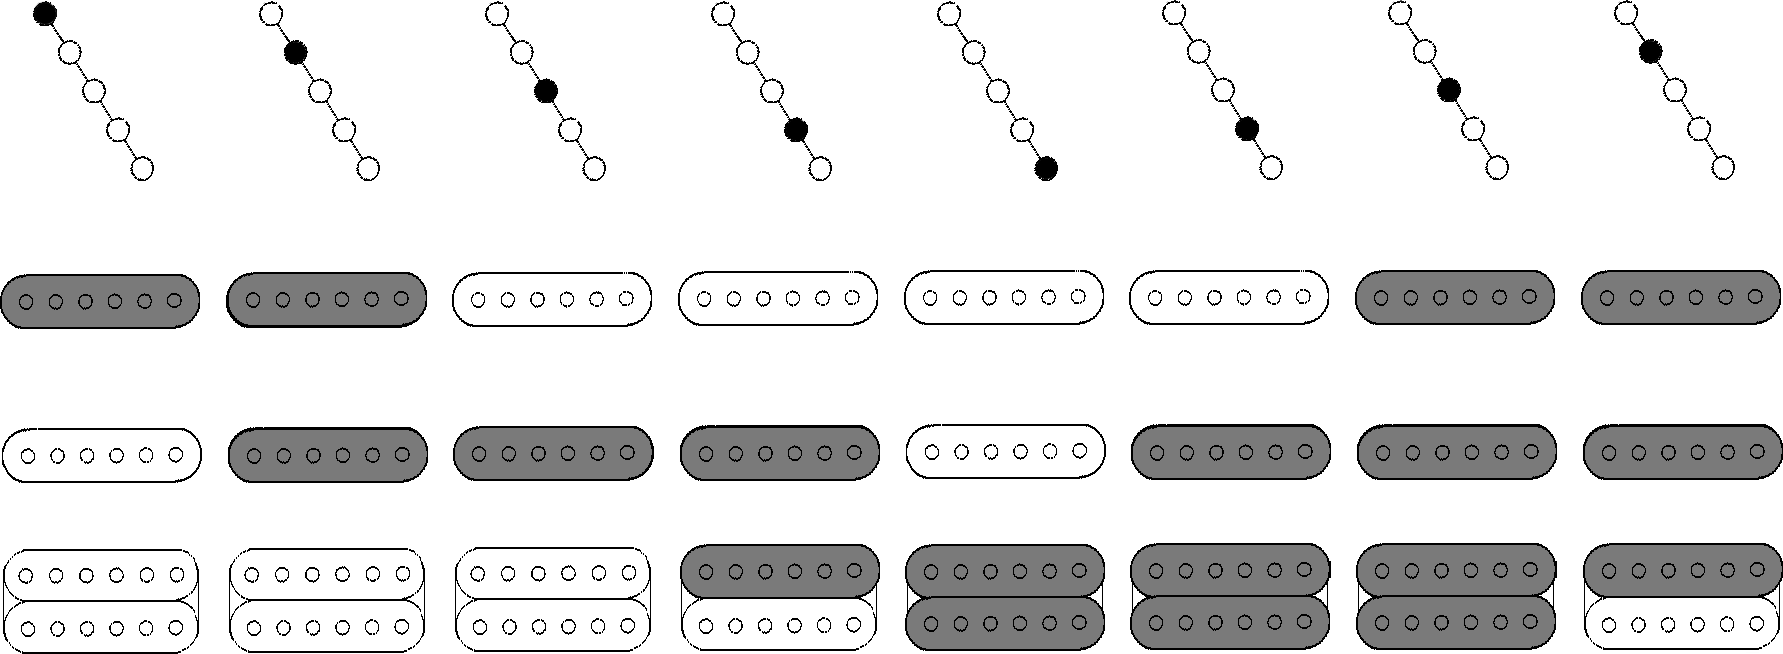 File:Pickup combinations.png - Wikimedia Commons